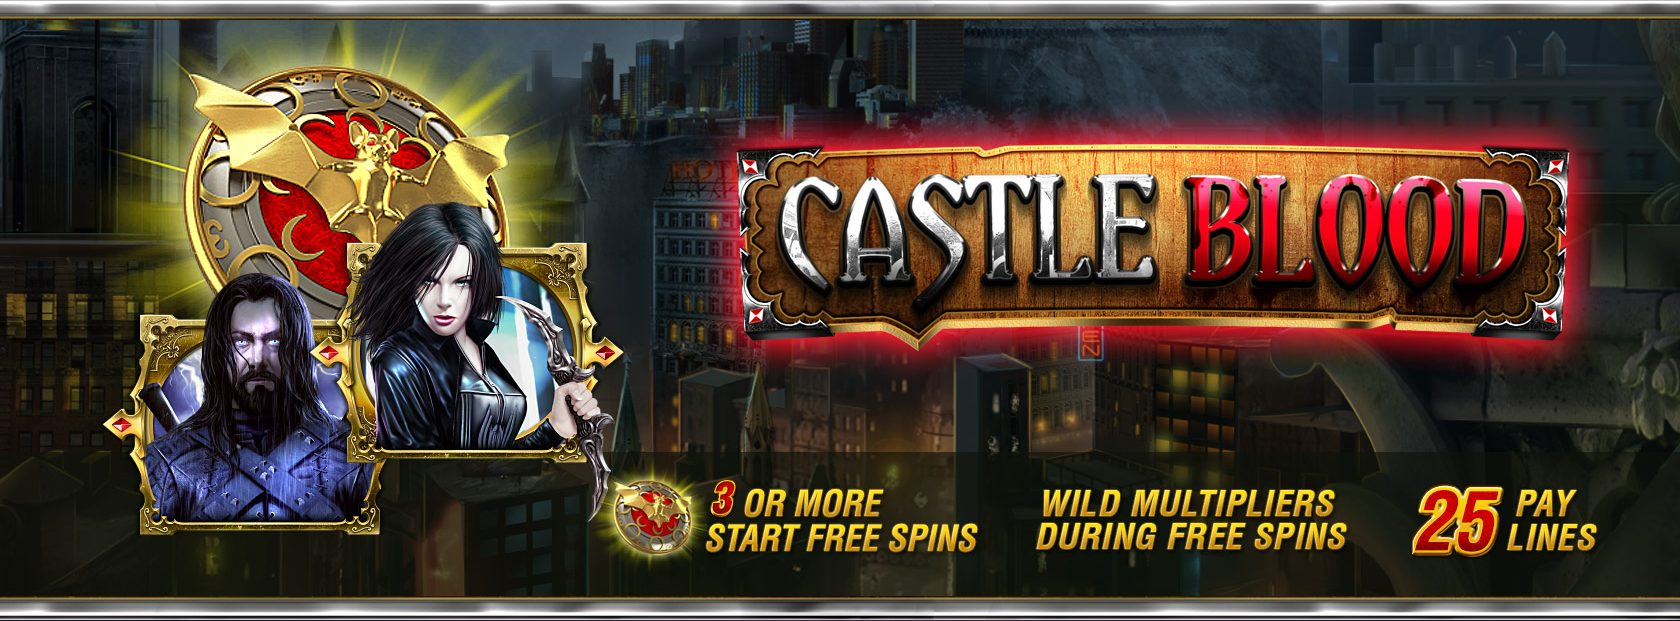 Castle Blood Slot Review